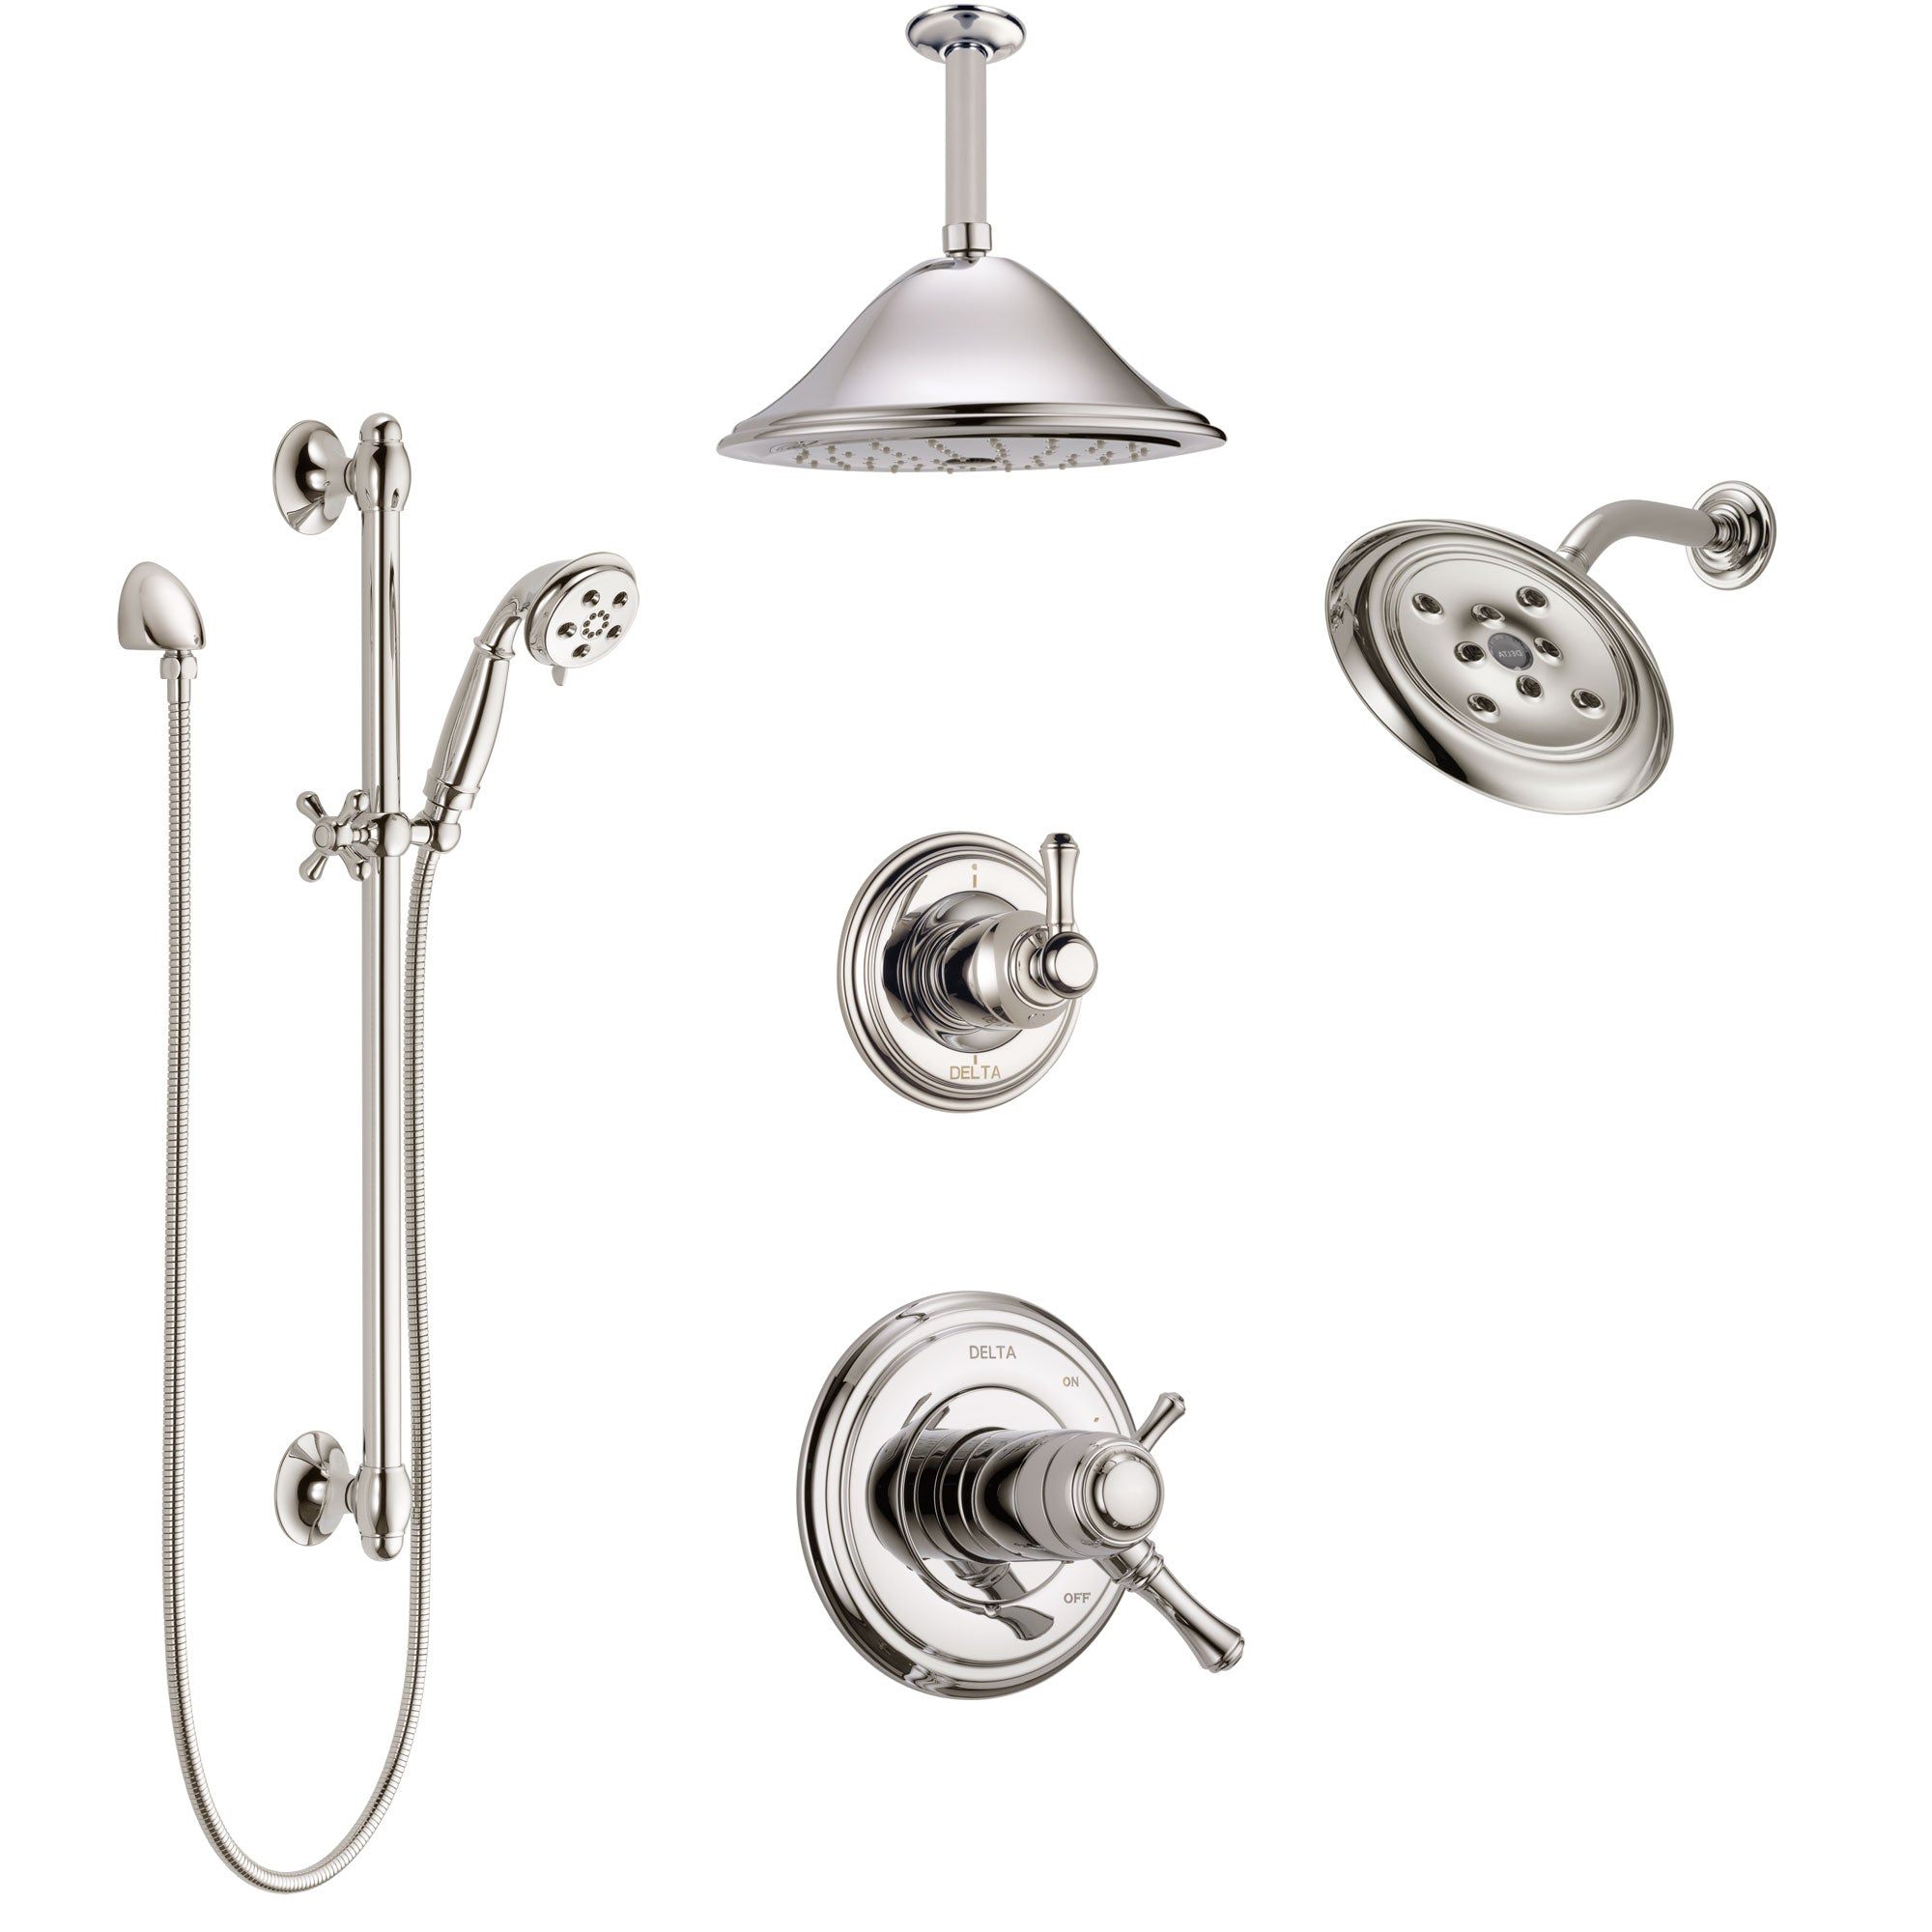 Delta Cassidy Polished Nickel Shower System with Dual Thermostatic Control, Diverter, Showerhead, Ceiling Showerhead, and Hand Shower SS17T971PN6